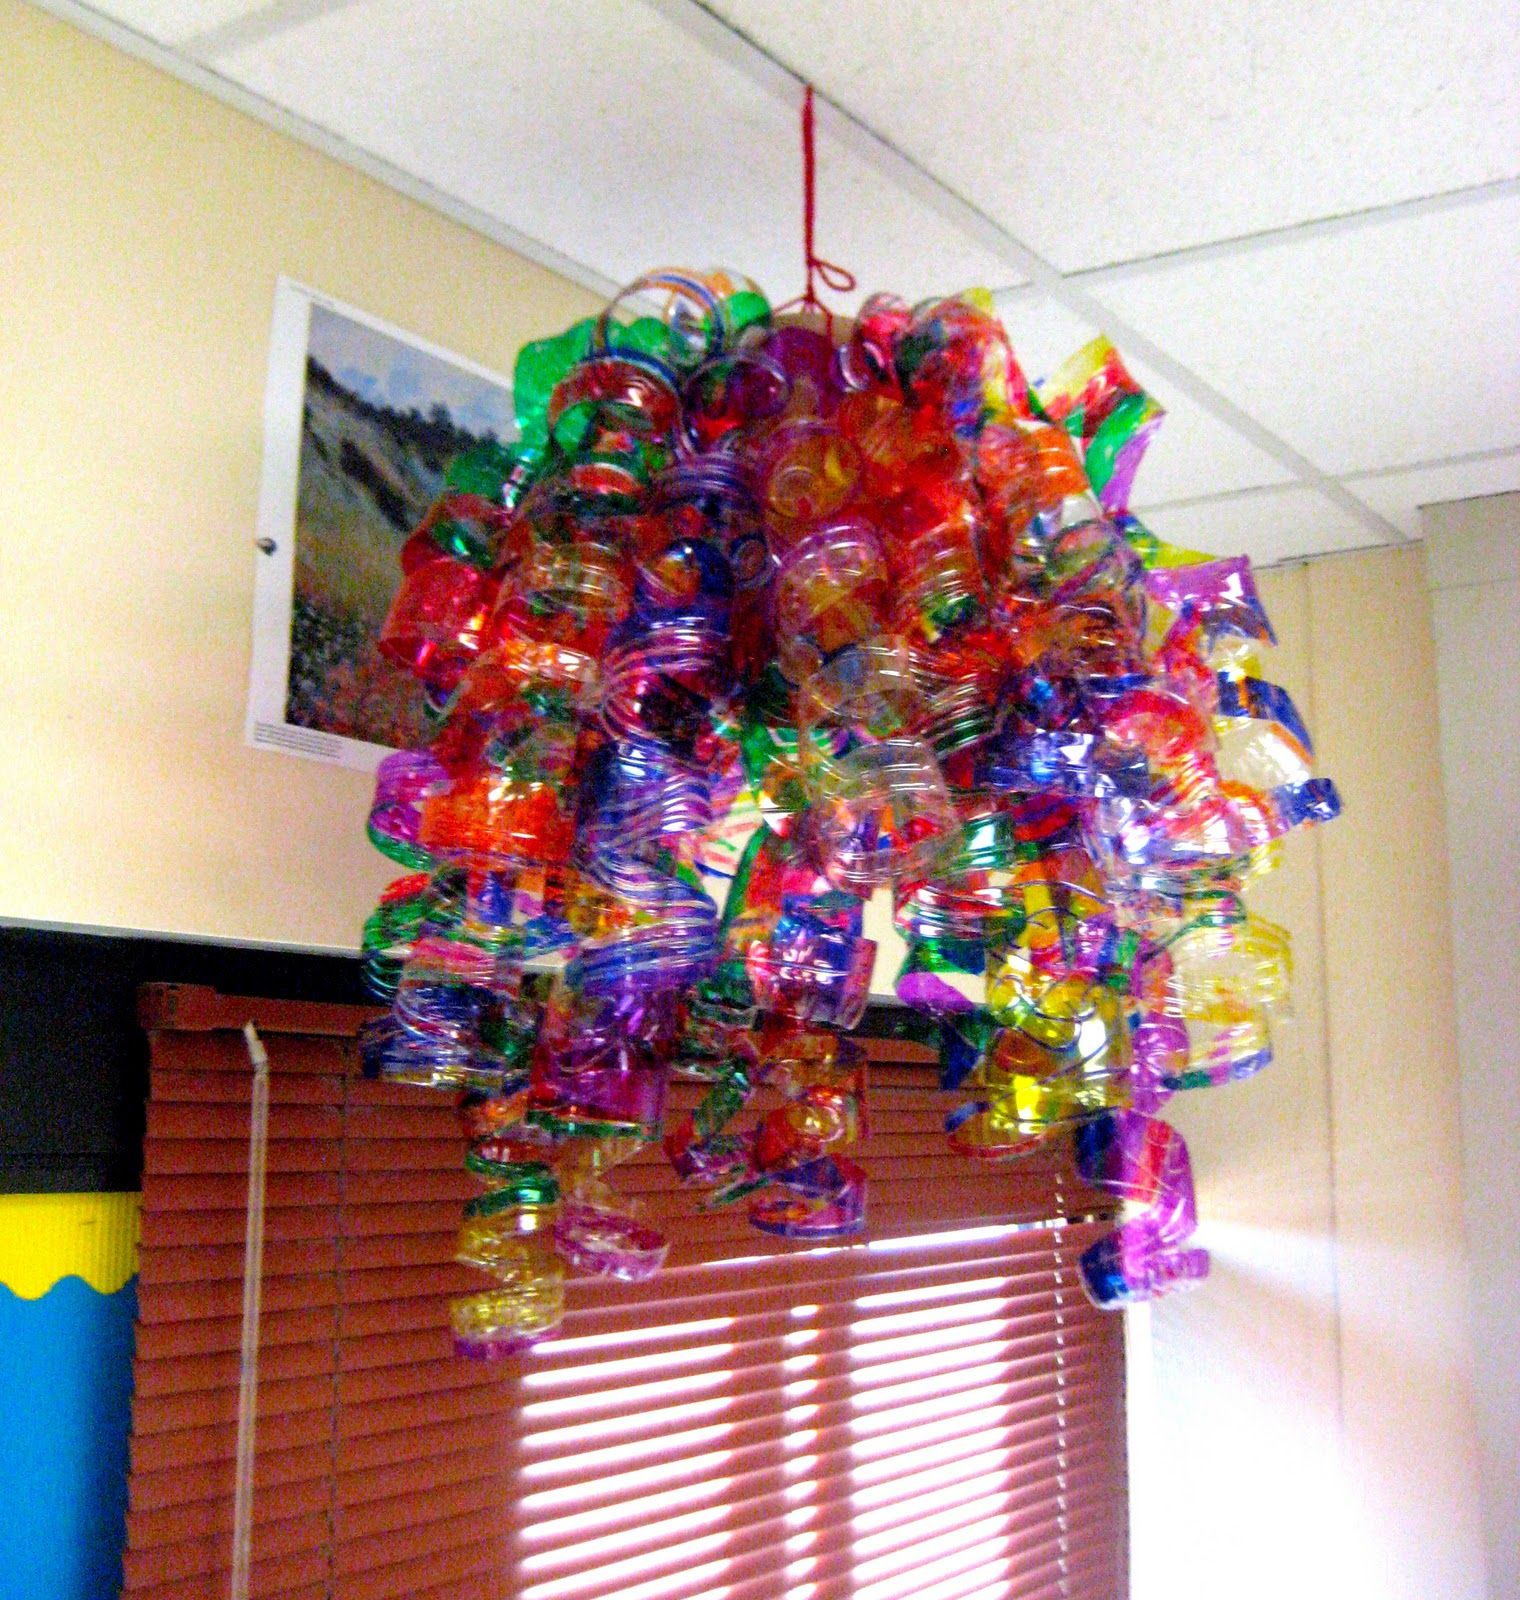 Water Bottle Projects: Recycle Projects With Plastic Bottles